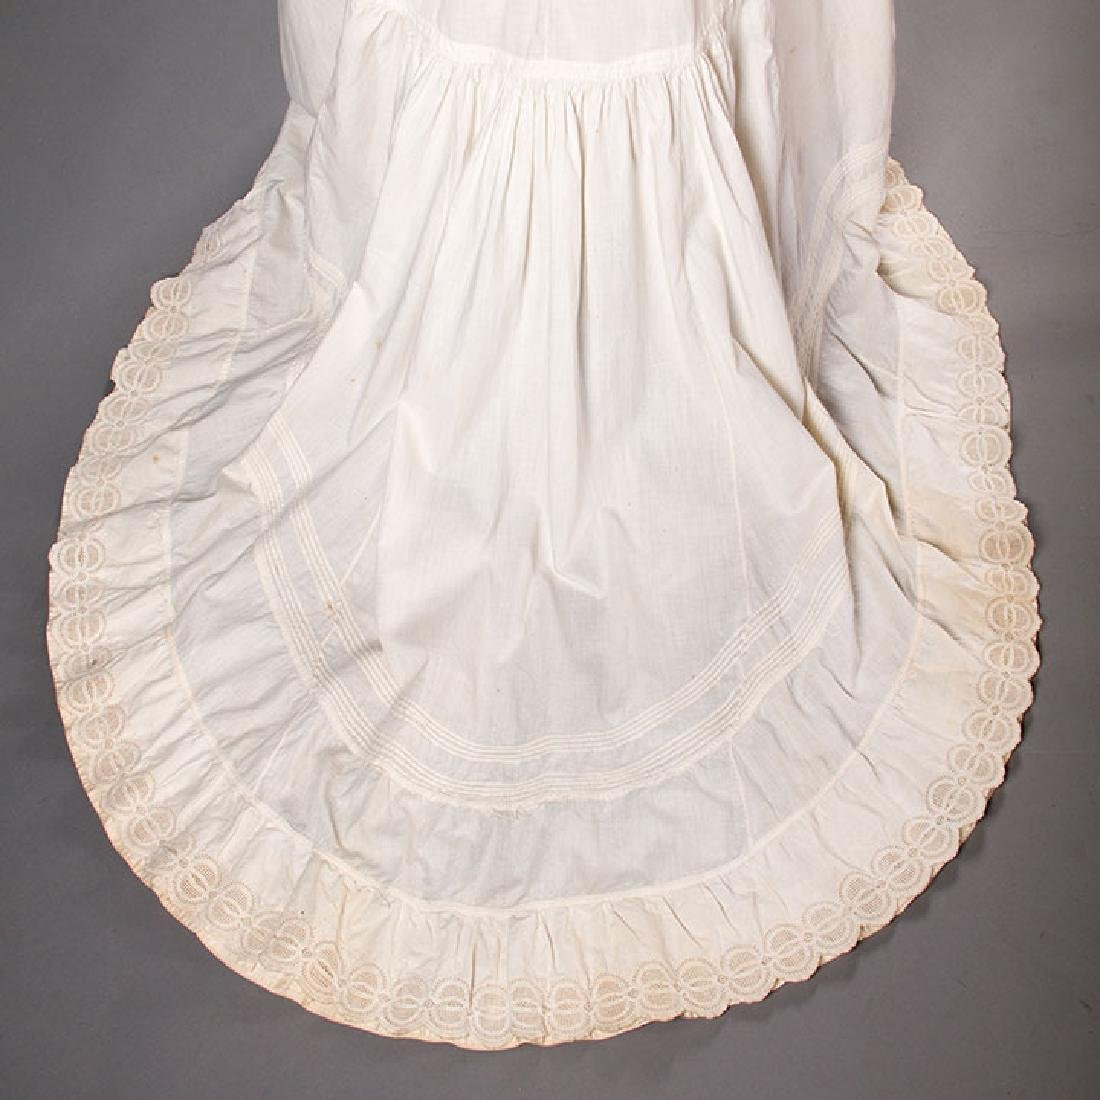 TWO TRAINED BUSTLE PETTICOATS, 1870-1880s - 5